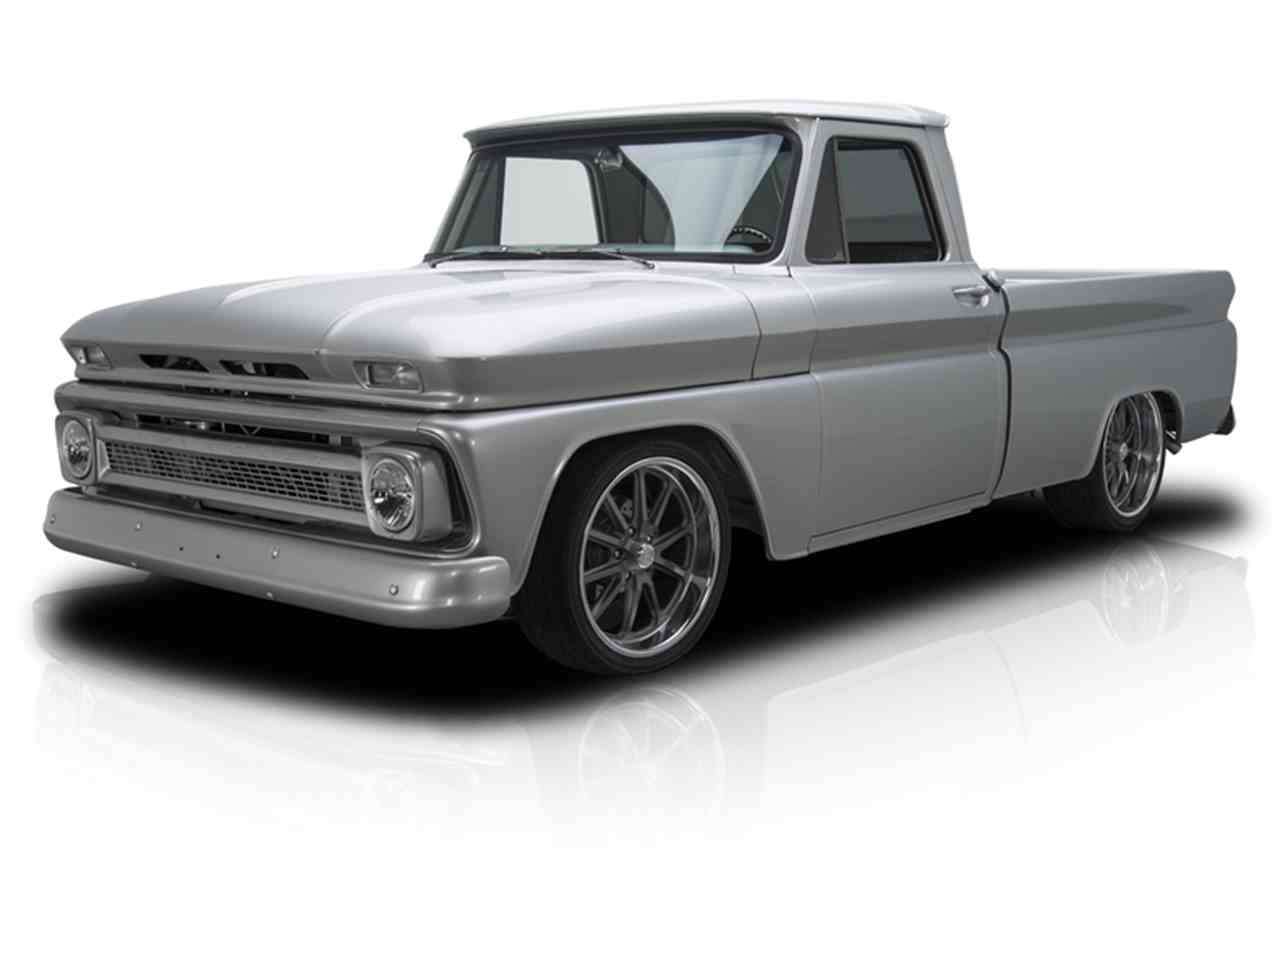 Pickup chevy c10 pickup truck : 1965 Chevrolet C10 Apache Pickup Truck for Sale | ClassicCars.com ...